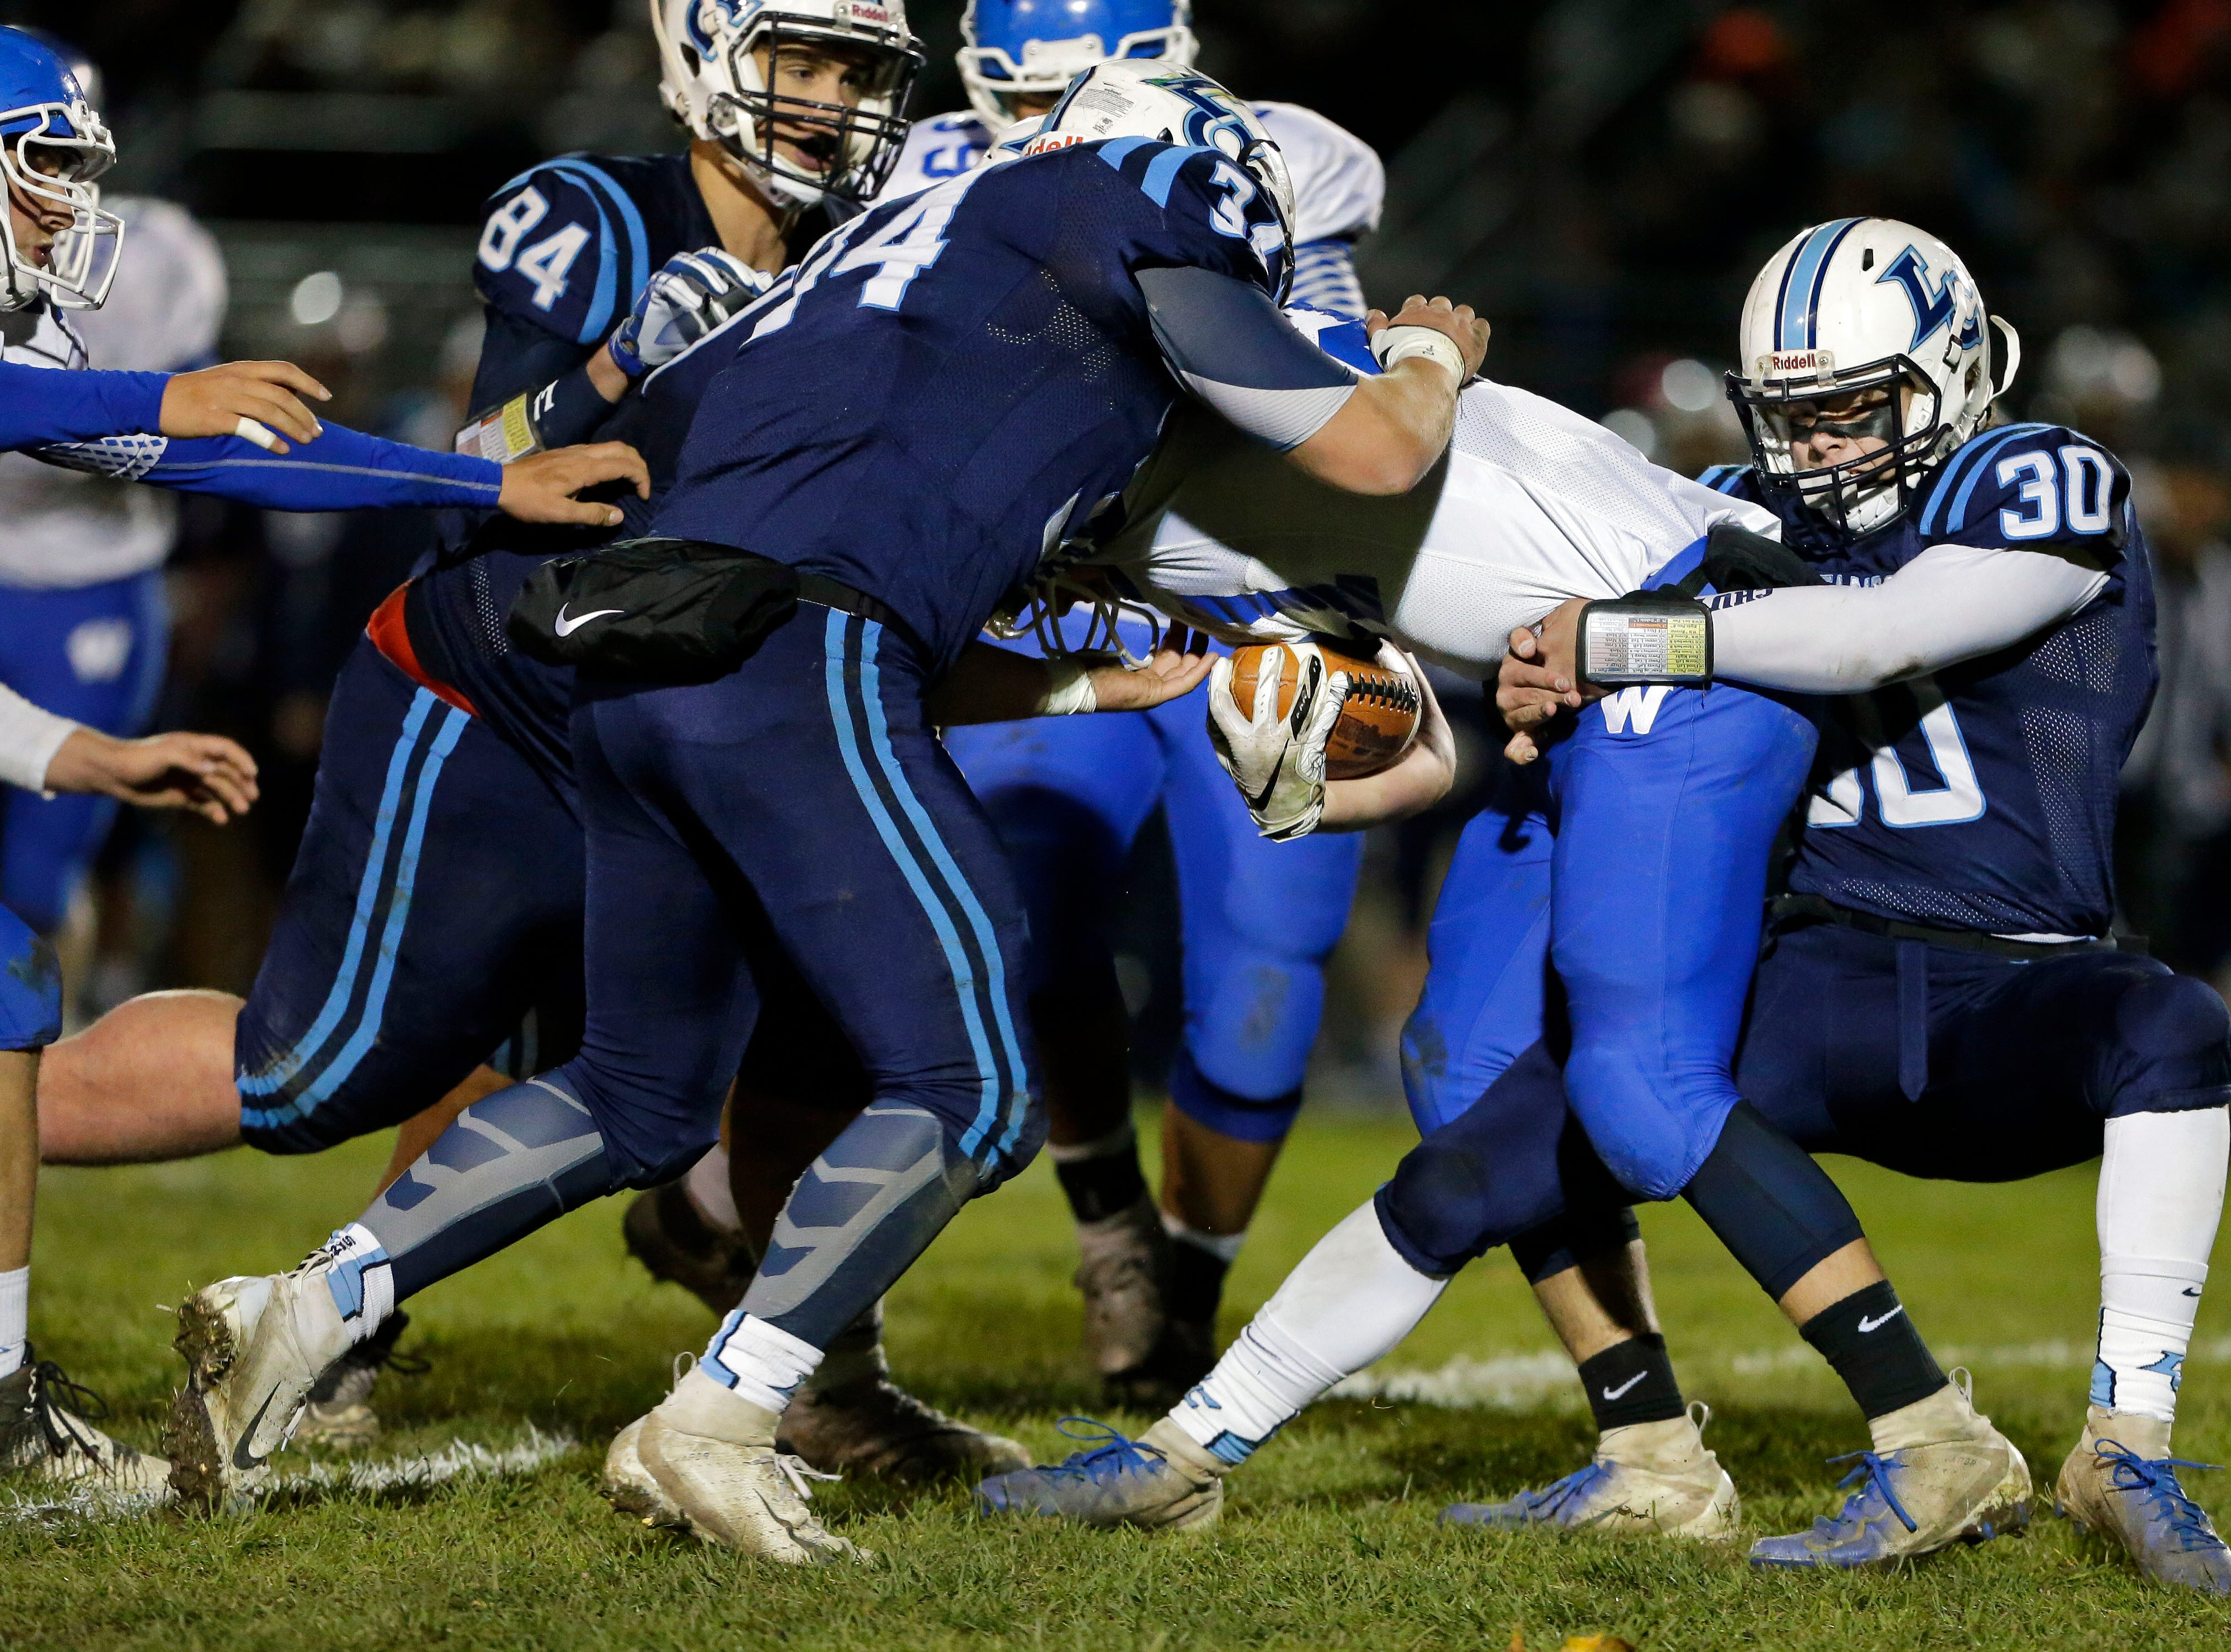 Thomas Mayefski (left) and Ryan Verstegen of Little Chute tackle Ben Jaeger of Wrightstown in a WIAA Division 4 Level 3 playoff game Friday, November 2, 2018, at Fitzpatrick Field in Little Chute, Wis.Ron Page/USA TODAY NETWORK-Wisconsin